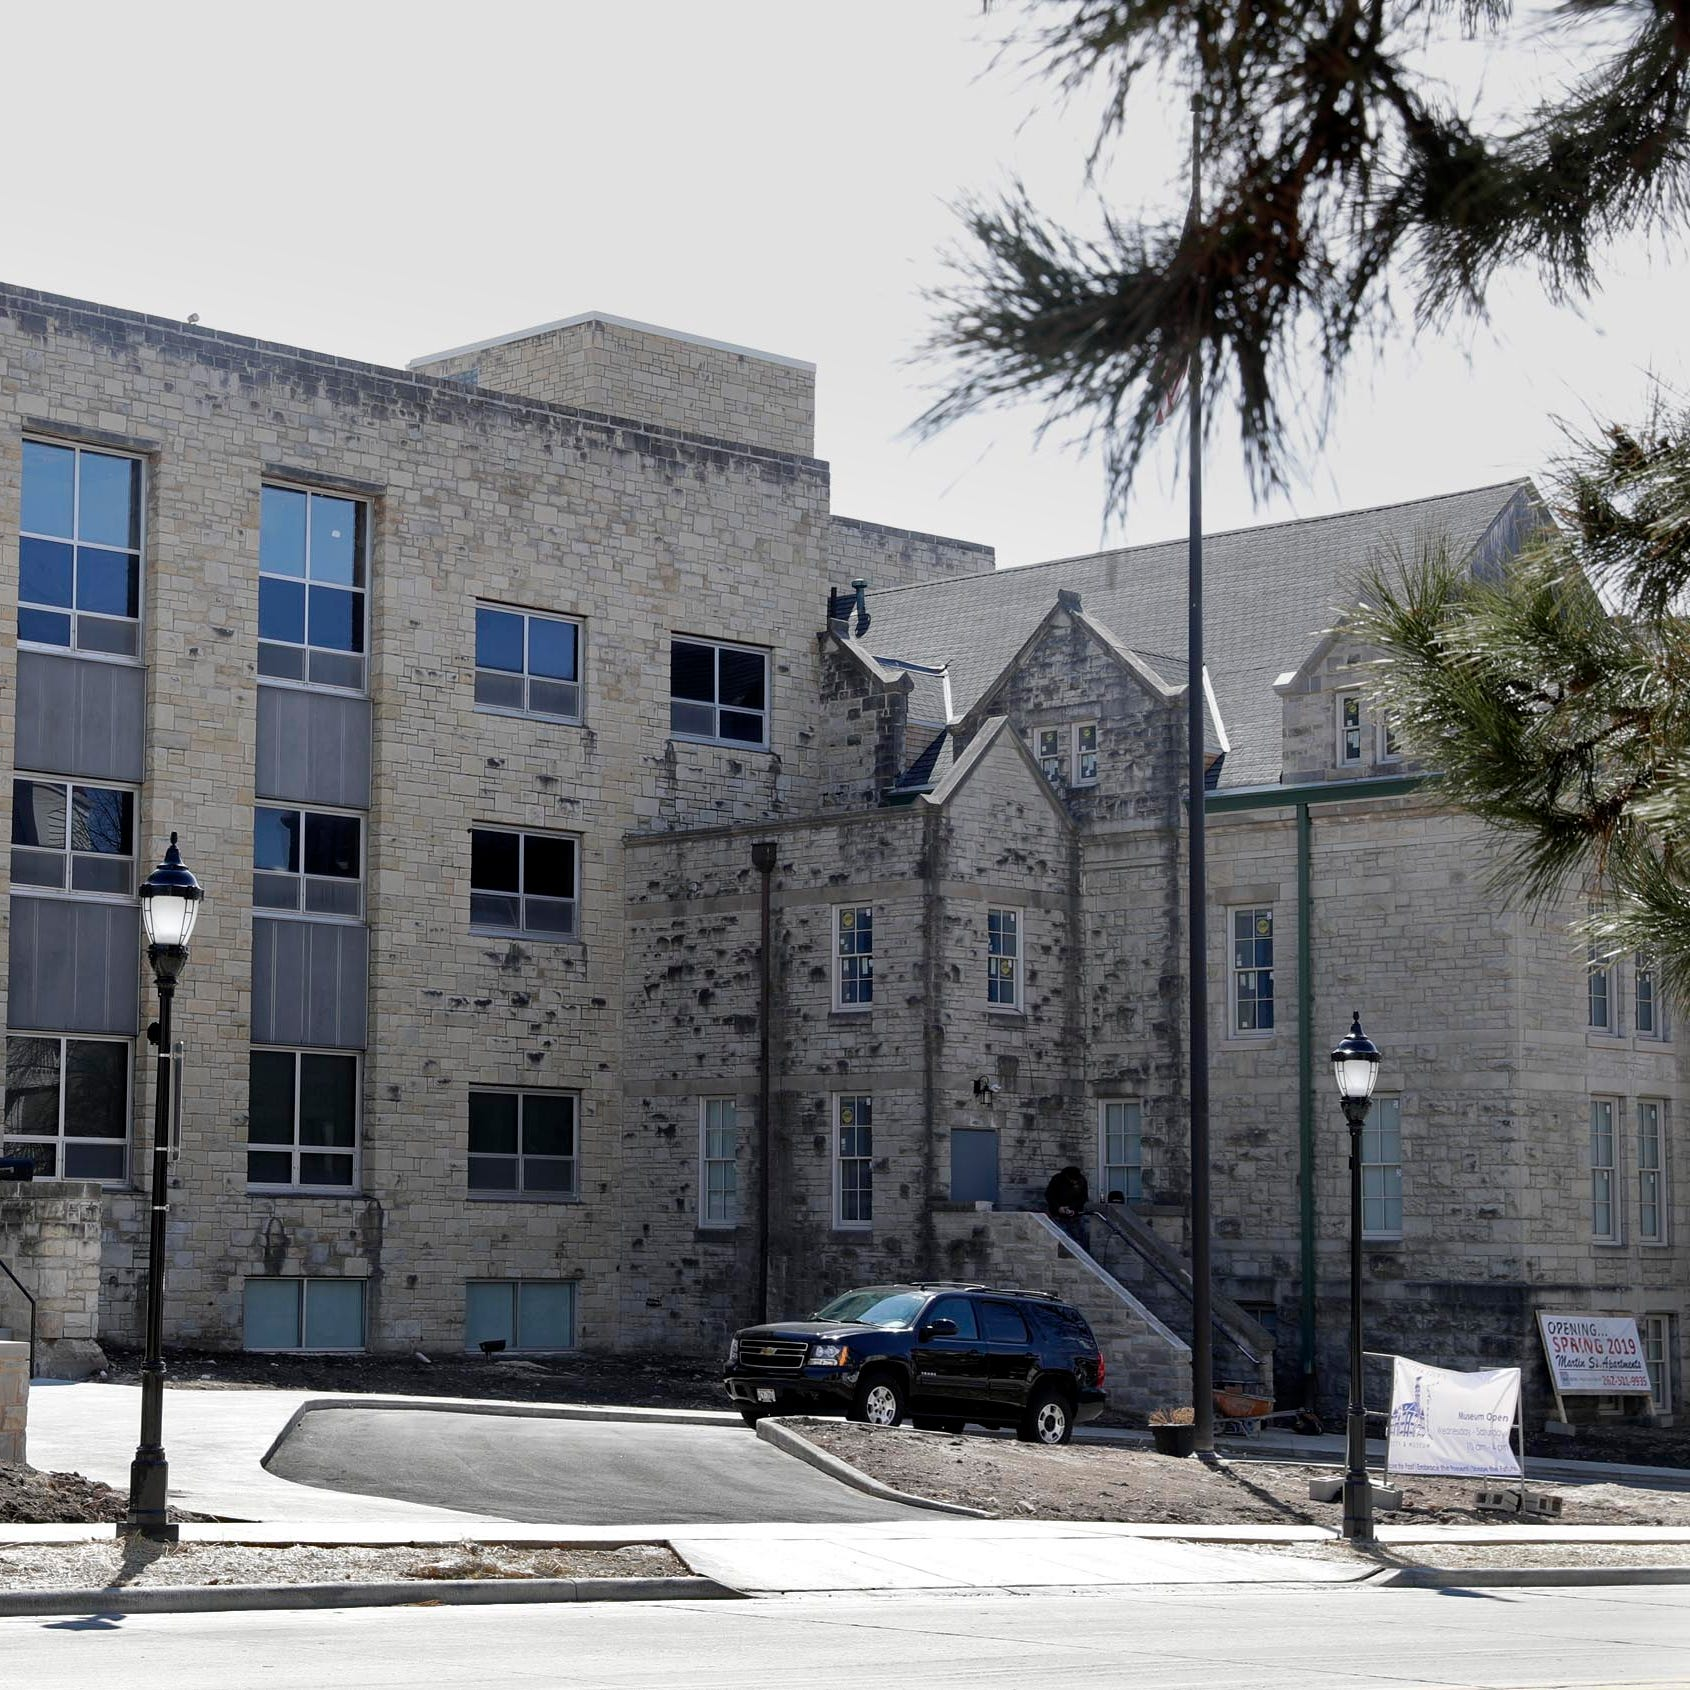 This historic building once served as Waukesha County's jail. Now it's opening new upscale apartments.